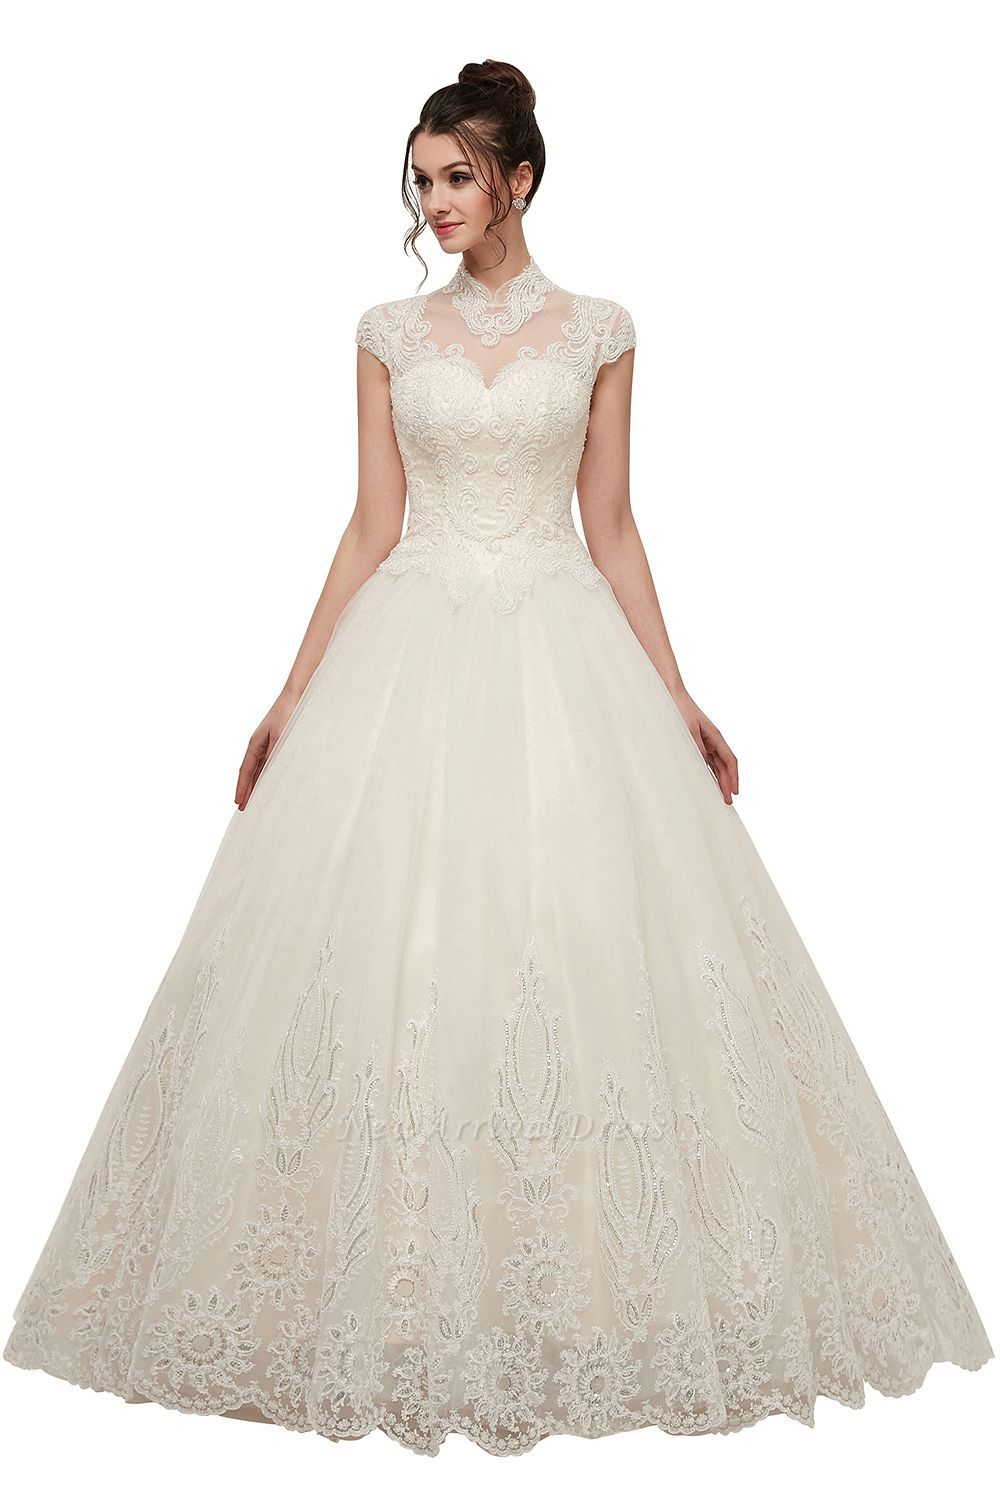 Yolande A Line High Neck Short Sleeves Long Lace Appliques Wedding Dresses With Lace U Lace Applique Wedding Dress Applique Wedding Dress Tulle Wedding Dress [ 1500 x 1000 Pixel ]